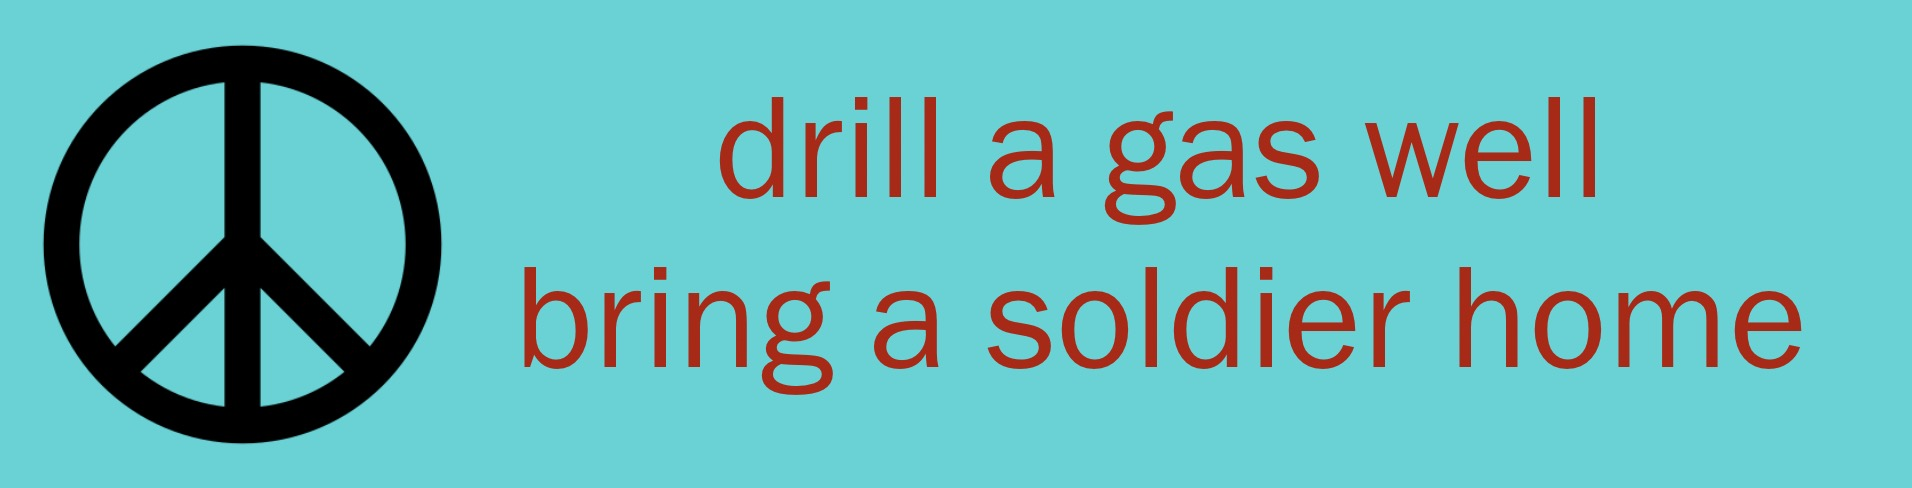 Drill A Gas Well, Bring A Soldier Home